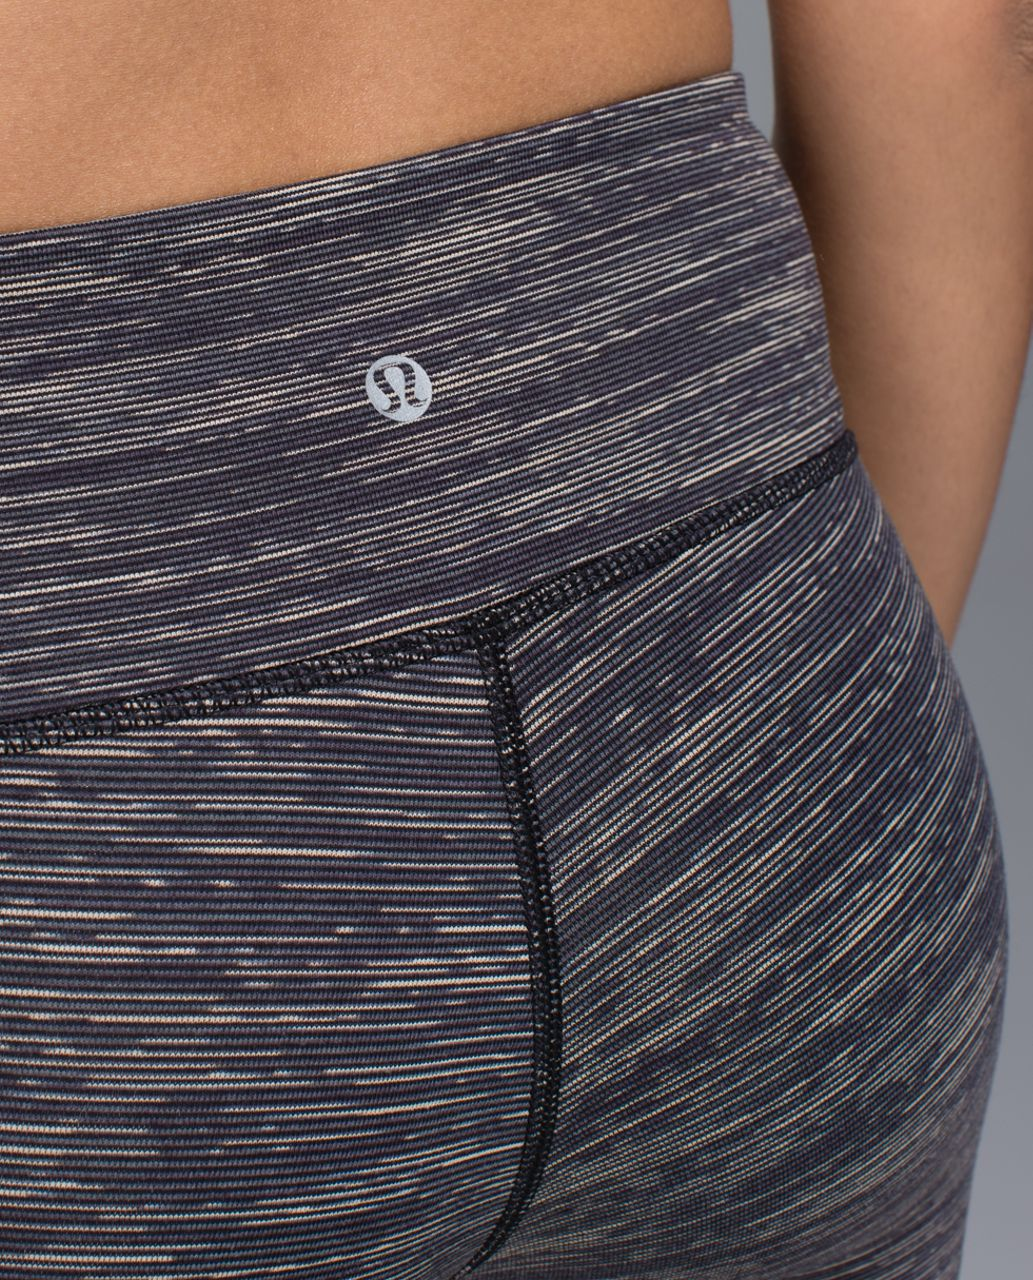 Lululemon Wunder Under Crop - Wee Are From Space Black Cashew / Black